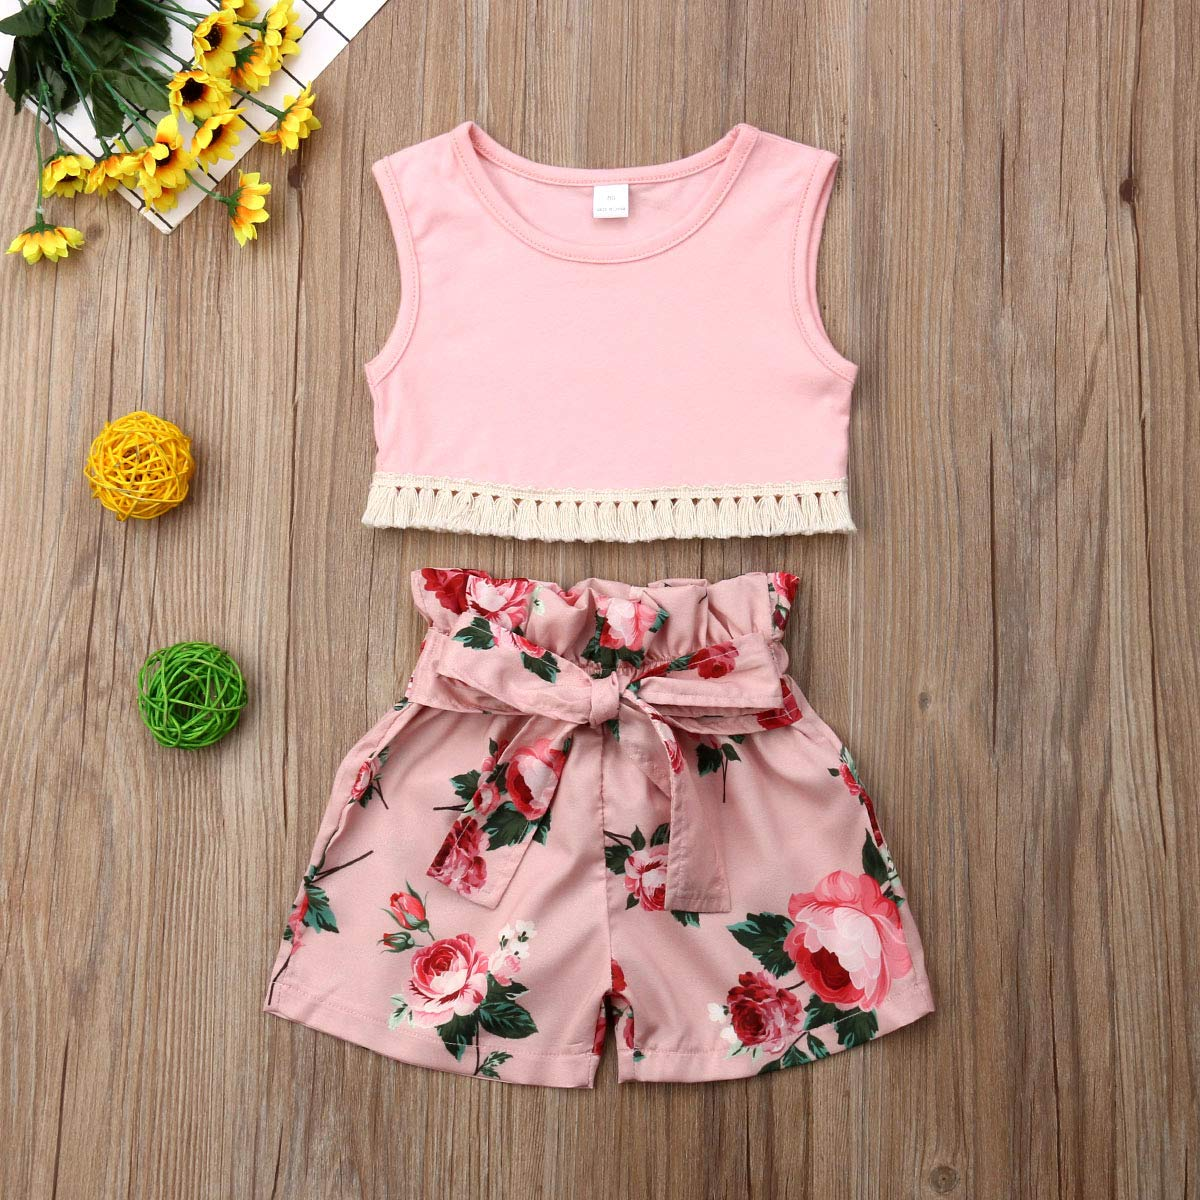 2Pcs Baby Girls Tassel Vest Top with Floral Bowknot Shorts Sunsuit Playwear Outfits